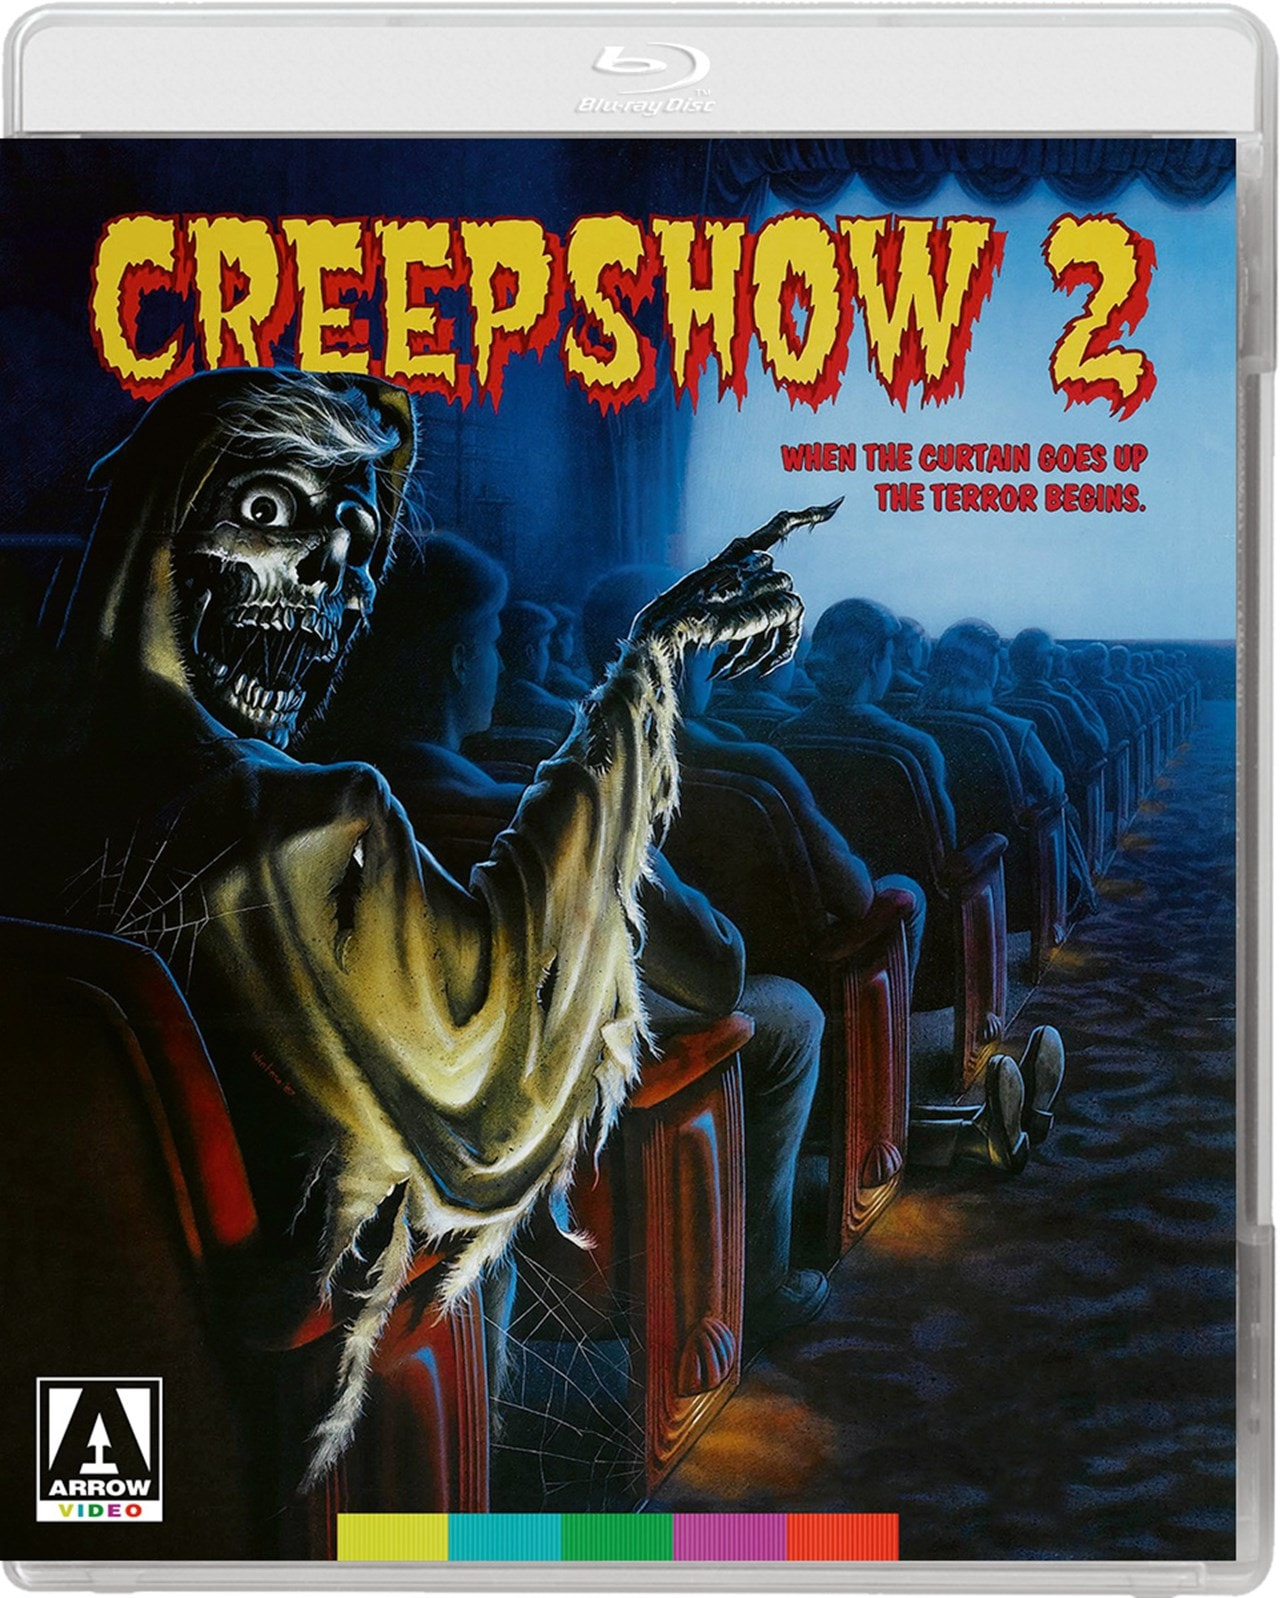 Creepshow 2: Limited Edition - 4